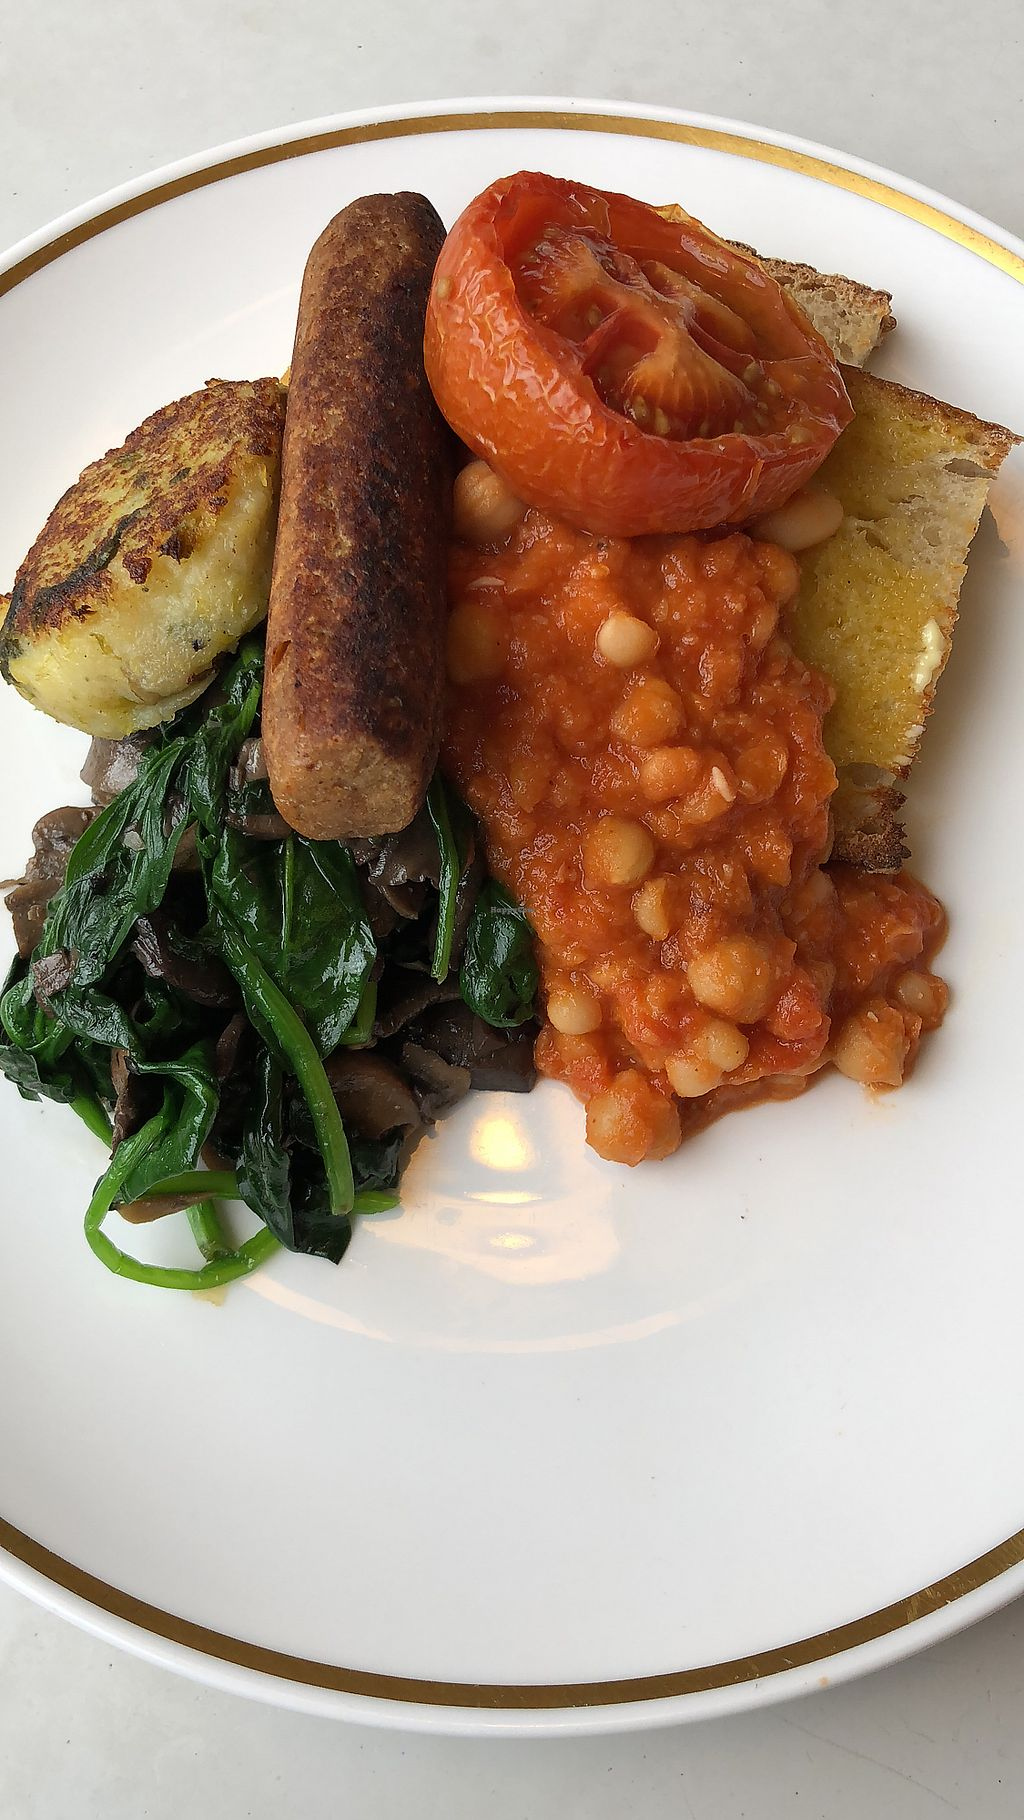 "Photo of Blue Brick Cafe  by <a href=""/members/profile/AtiyaDavids"">AtiyaDavids</a> <br/>Vegan (large) full English  <br/> April 2, 2018  - <a href='/contact/abuse/image/26415/379778'>Report</a>"